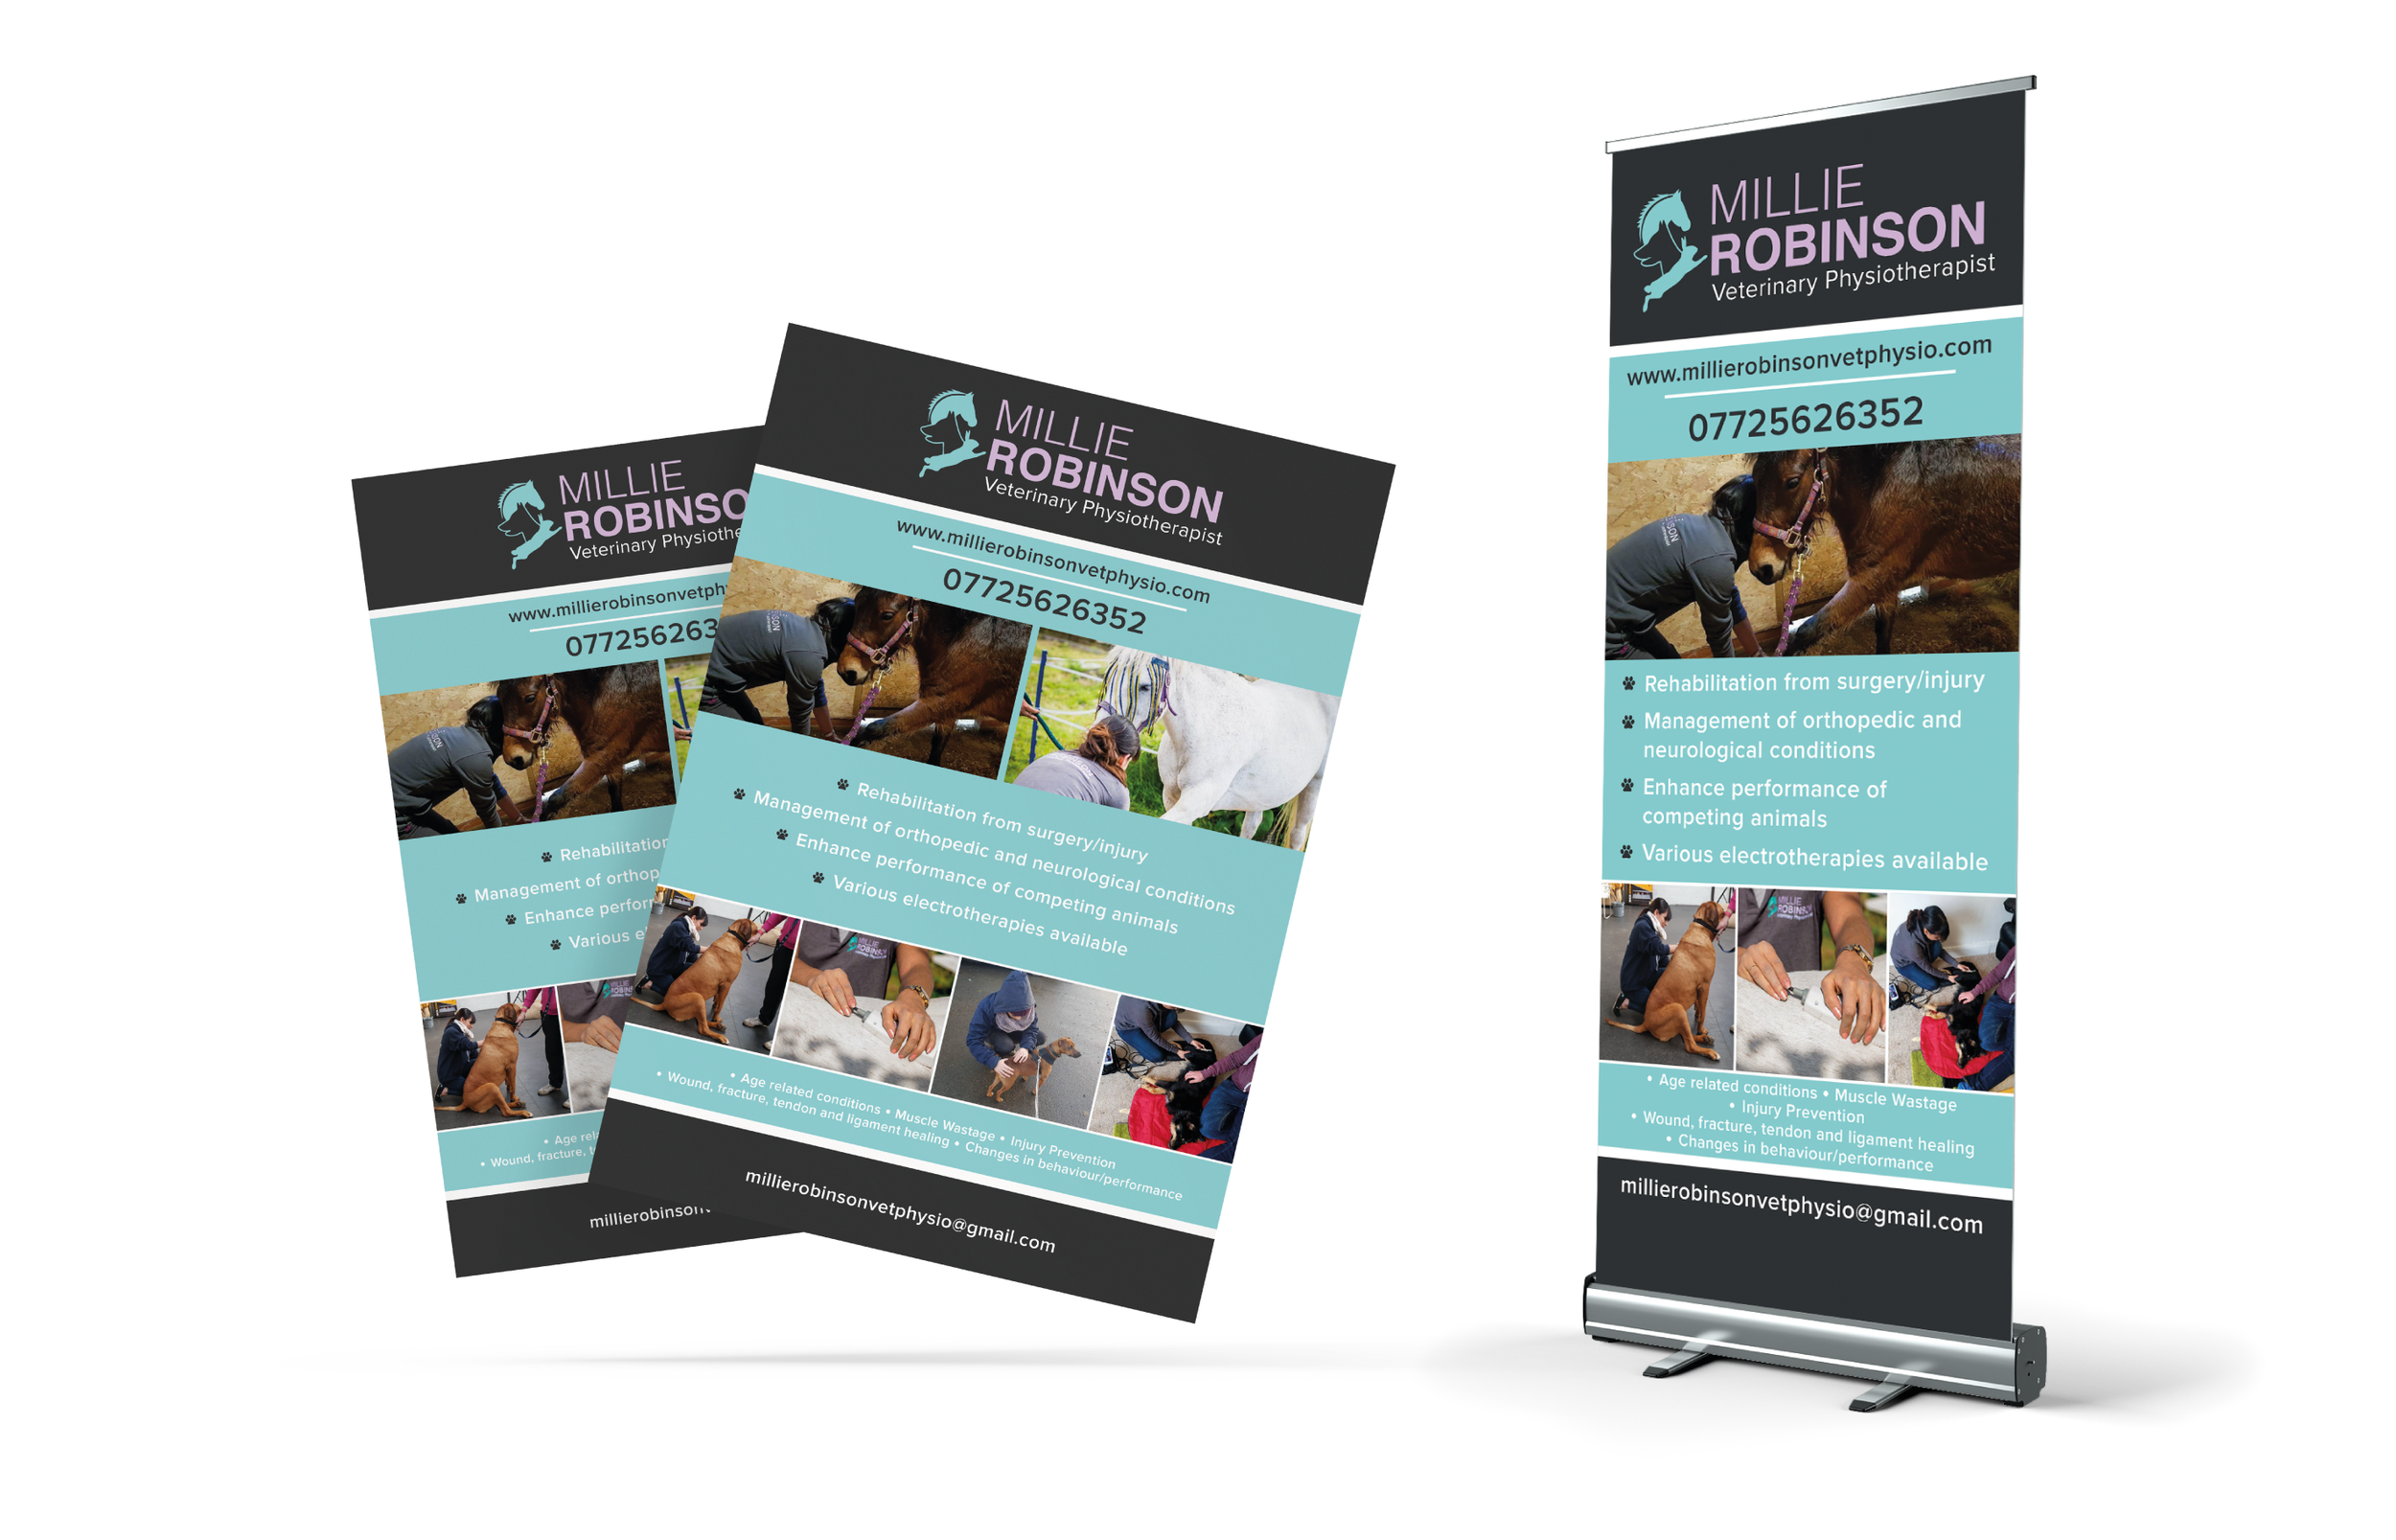 Millie Robinson Event Material Design and Print